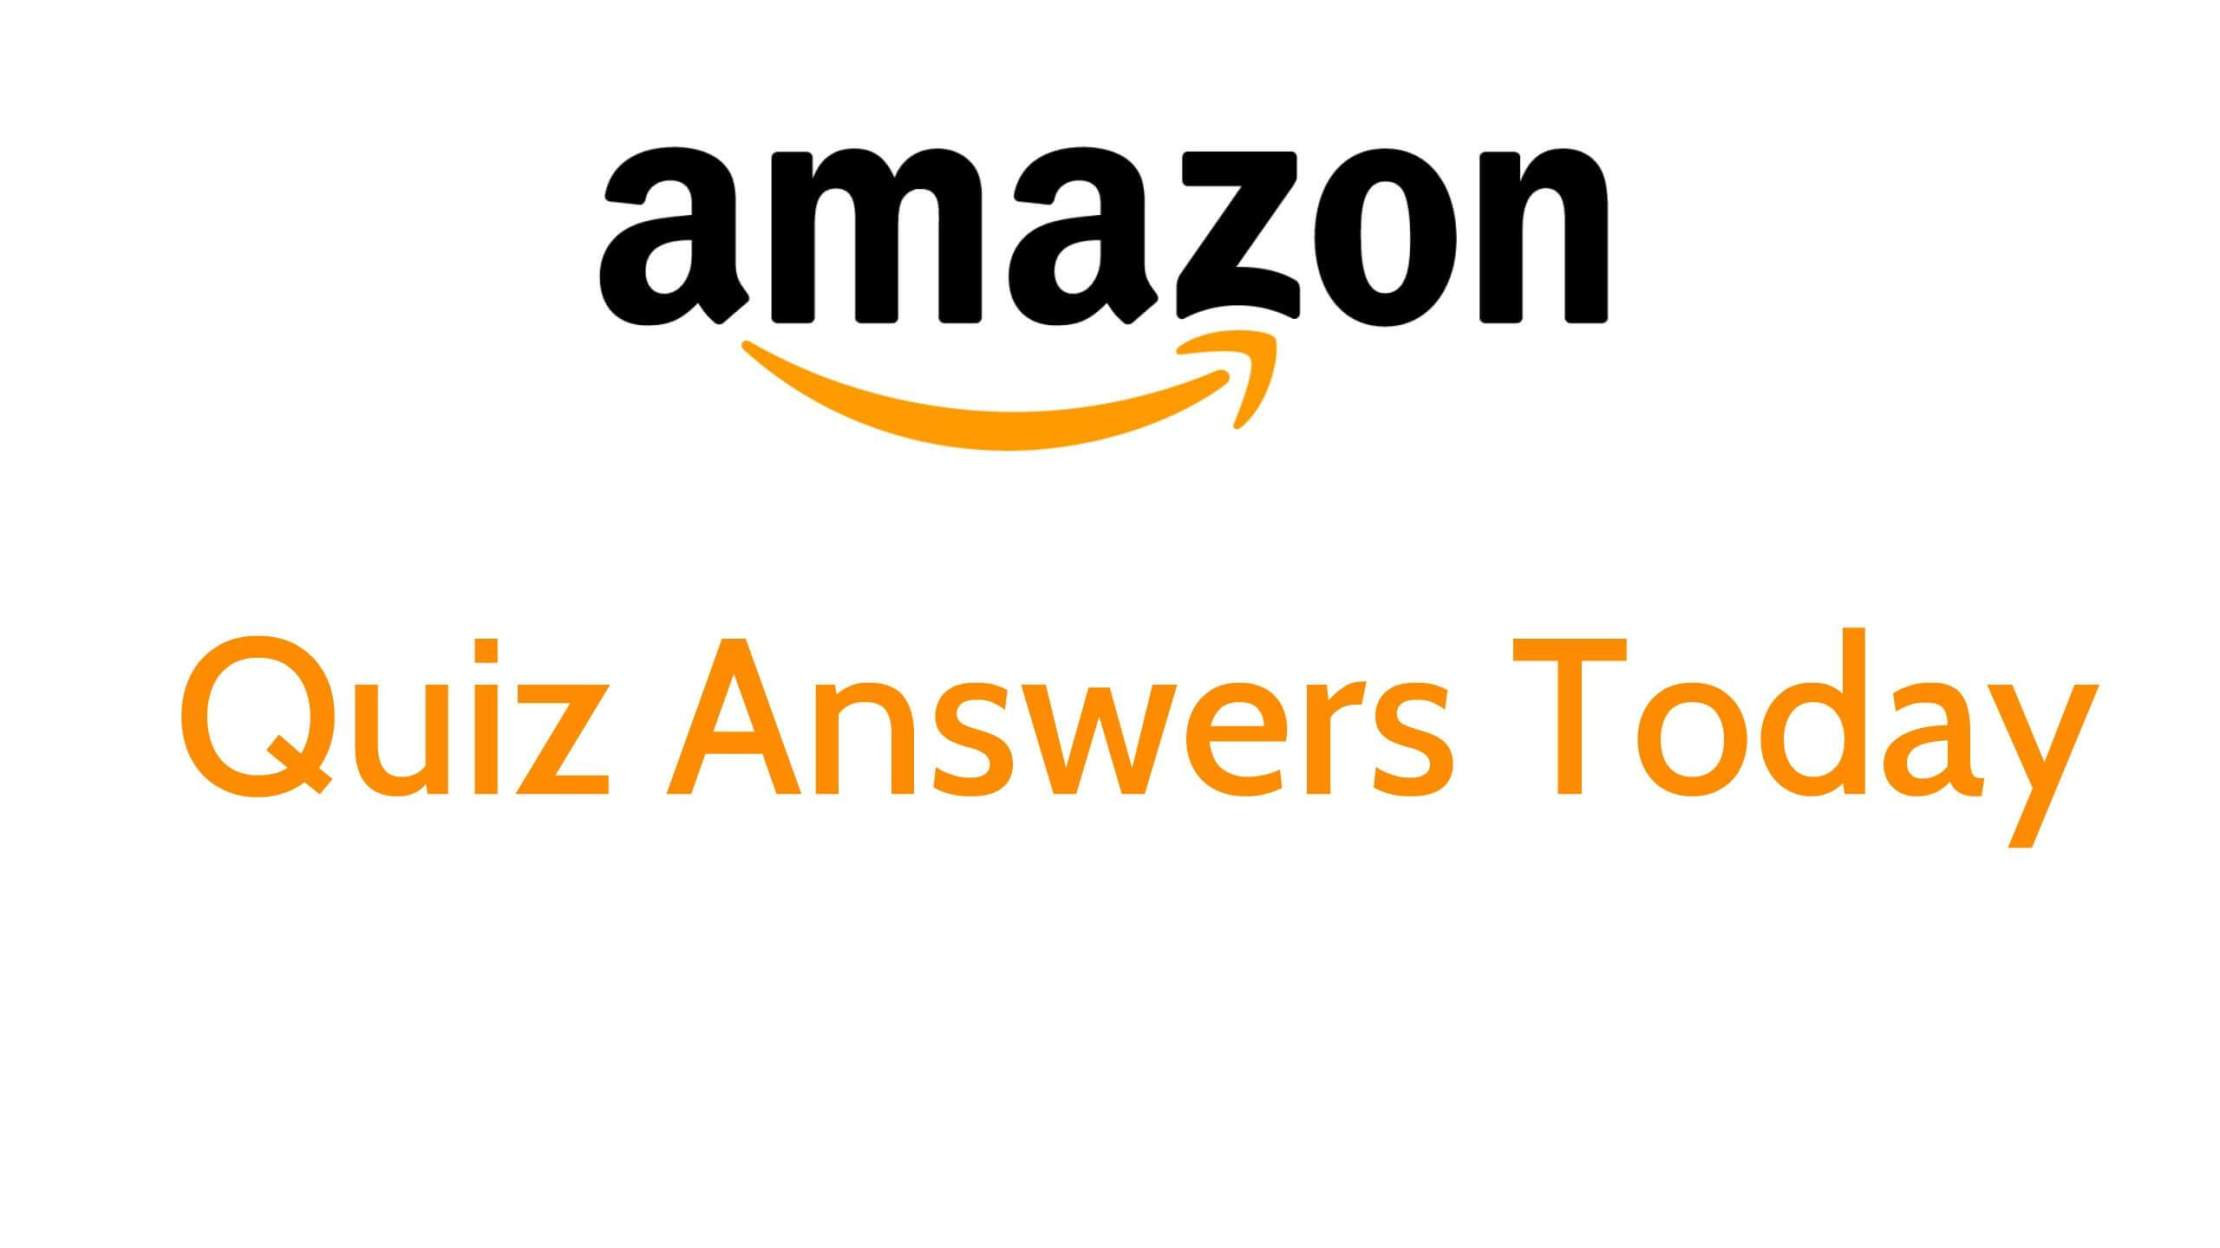 Amazon Daily Quiz Answers for September 6 Revealed, Go Pro